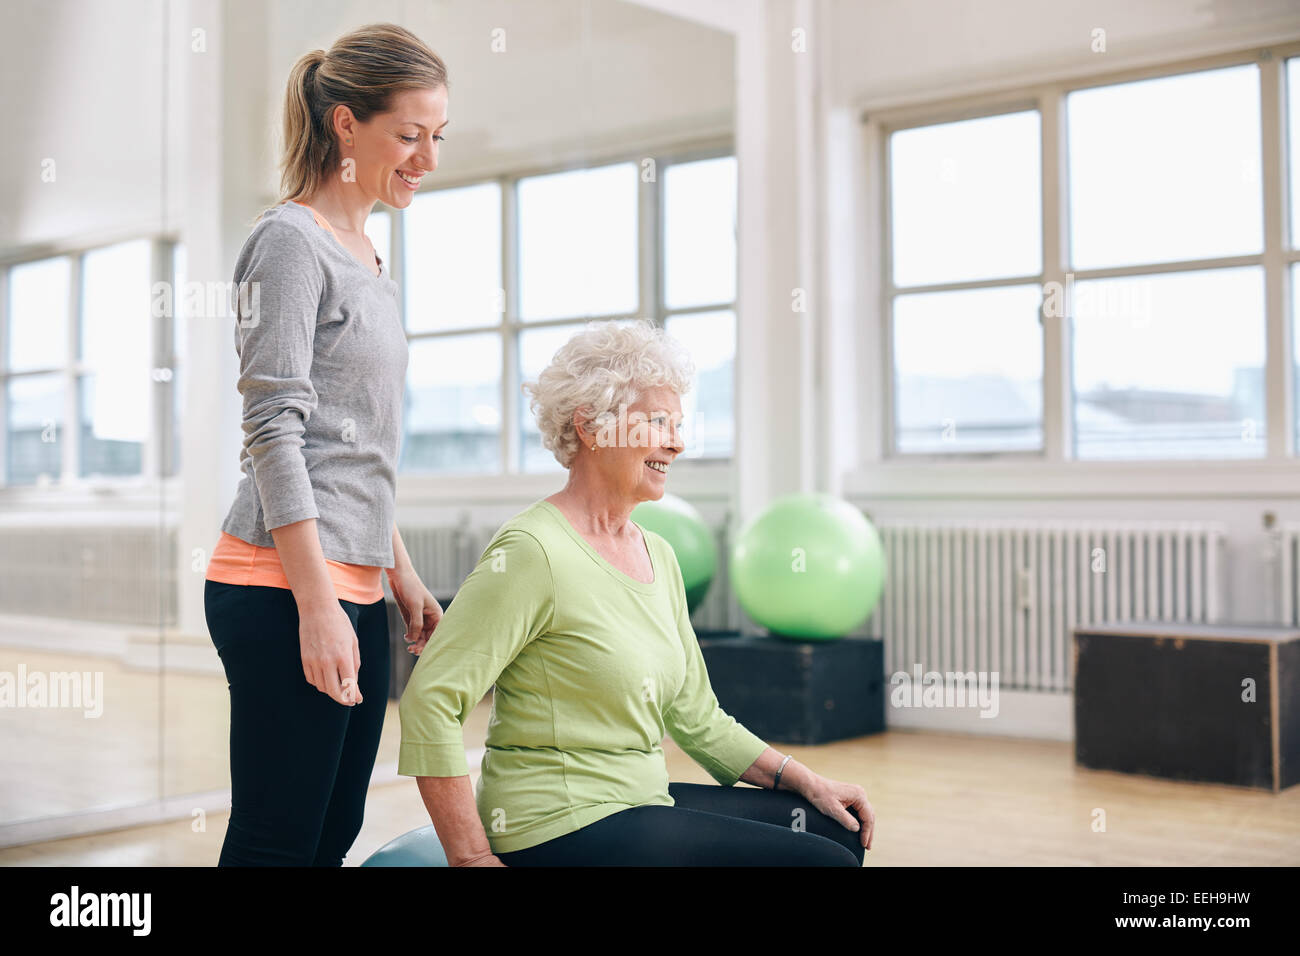 Portrait of female instructor assisting senior woman exercising in gym. Two fitness woman at health club exercising. - Stock Image